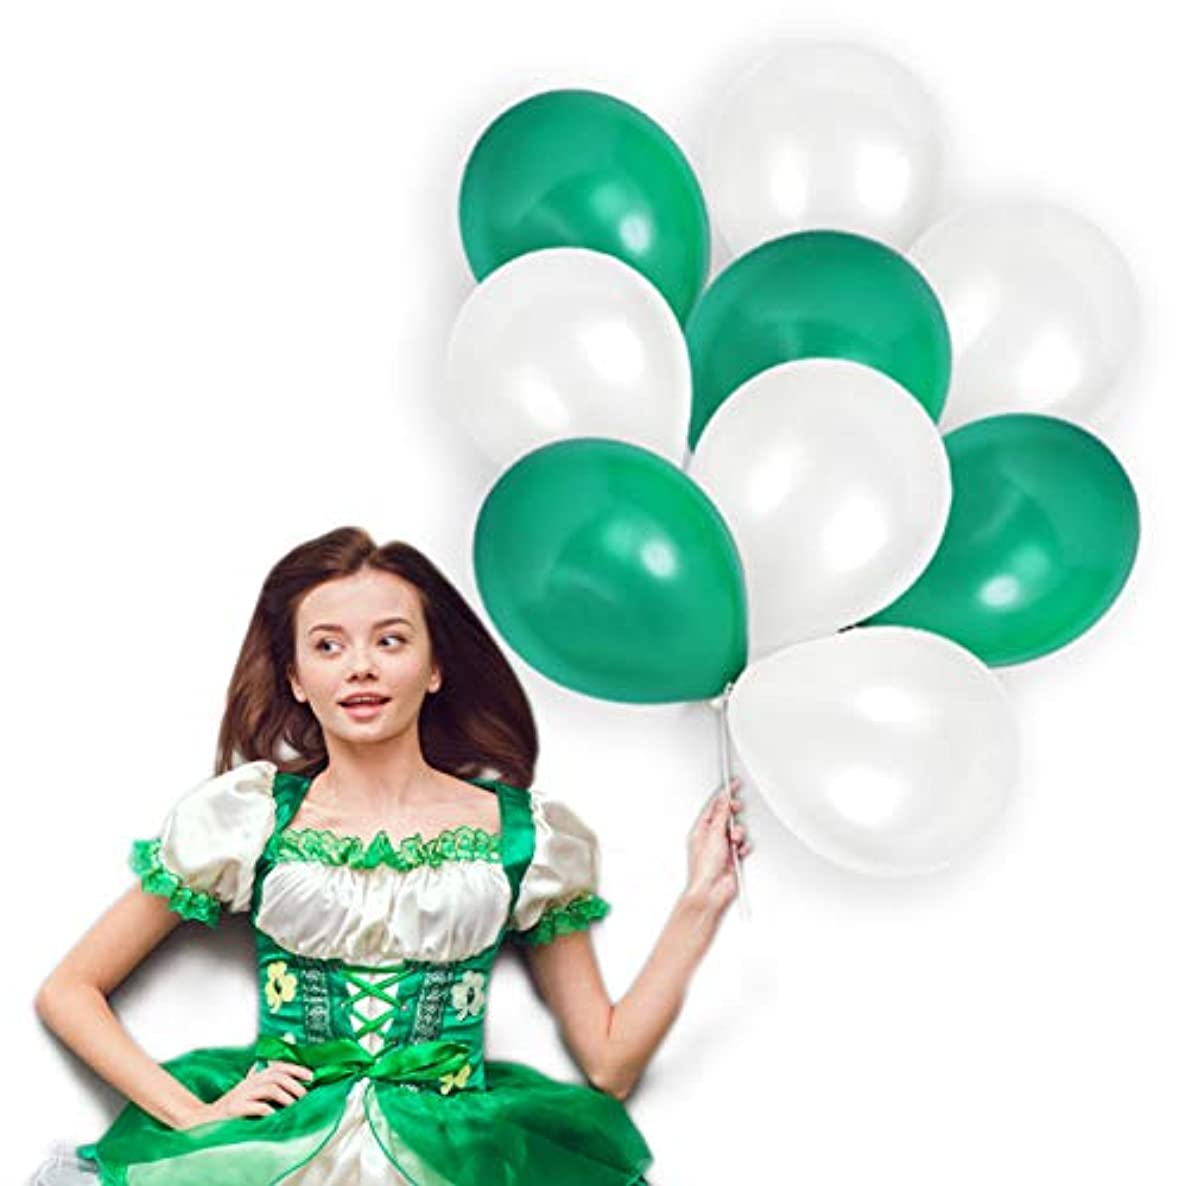 St Patrick's Day Emerald Green and White Balloons 12 Inch Shamrock Thick Latex Balloon Bulk Pack of 72 and 65 Yards Curling Ribbons Party Supplies Graduation Bridal Baby Shower Birthday Decorations